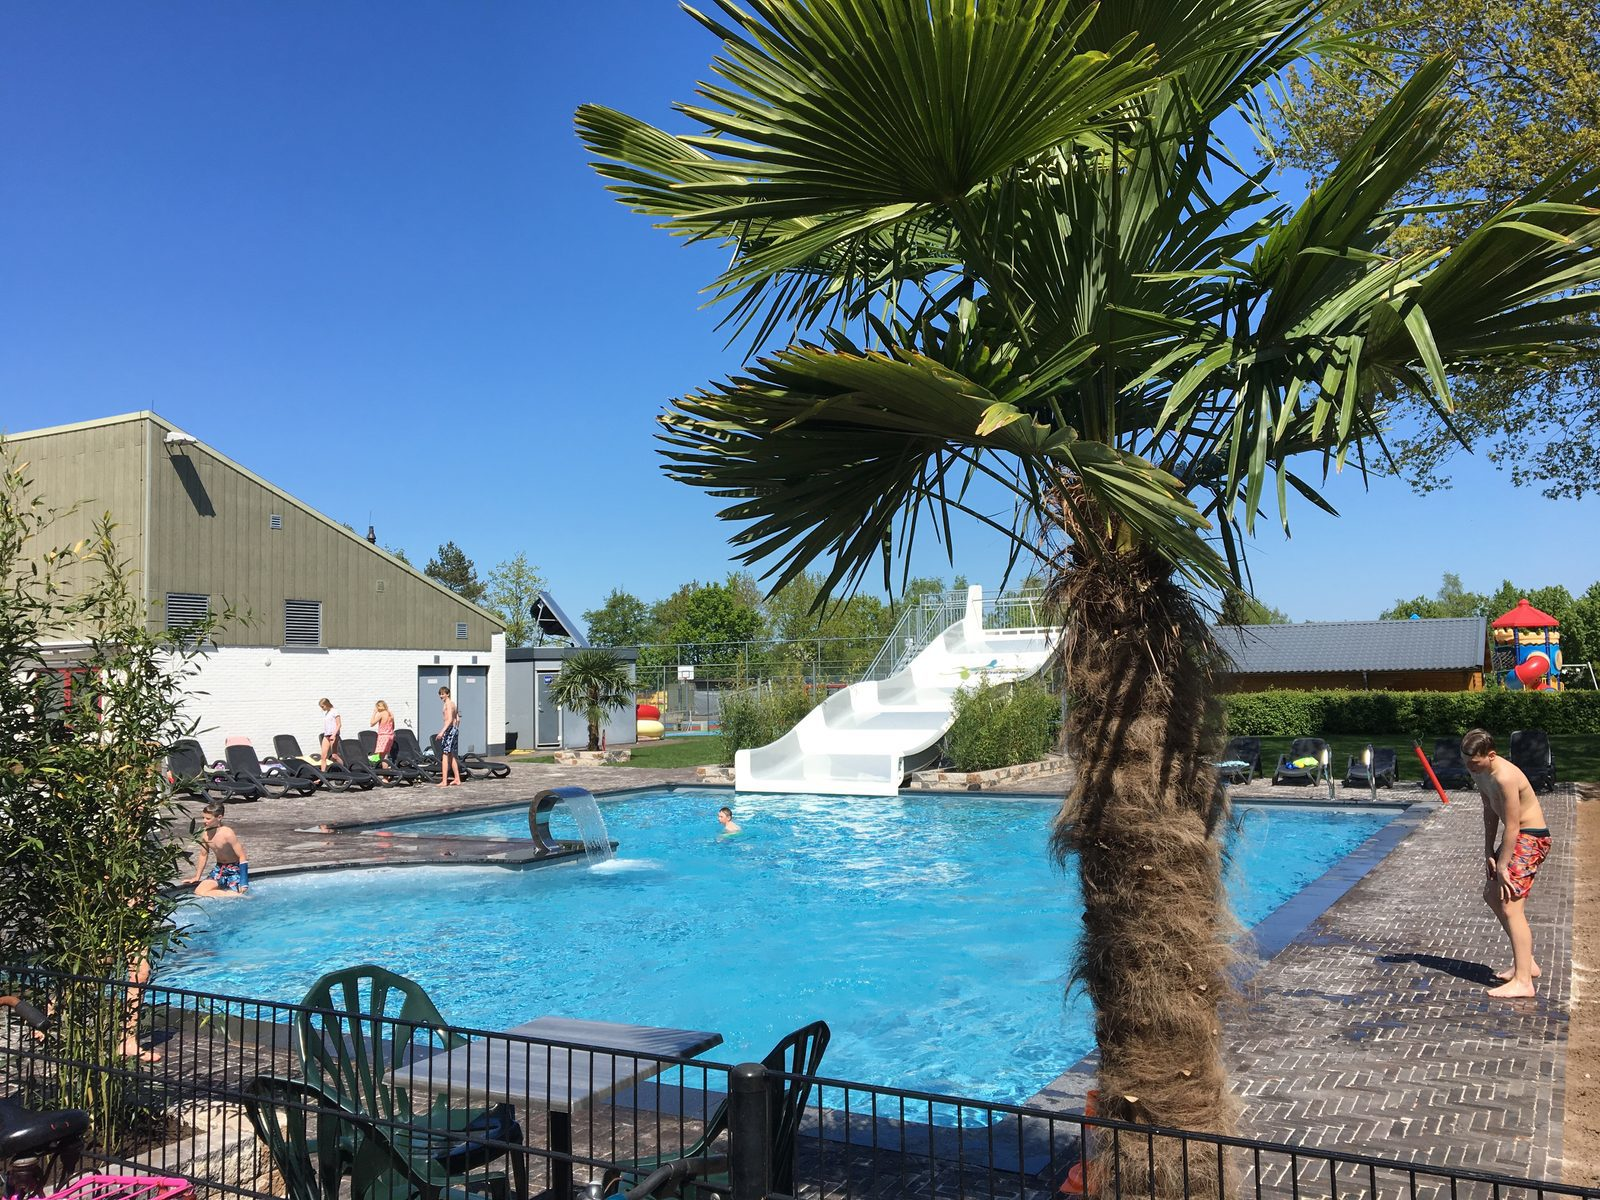 Camping Duitse grens